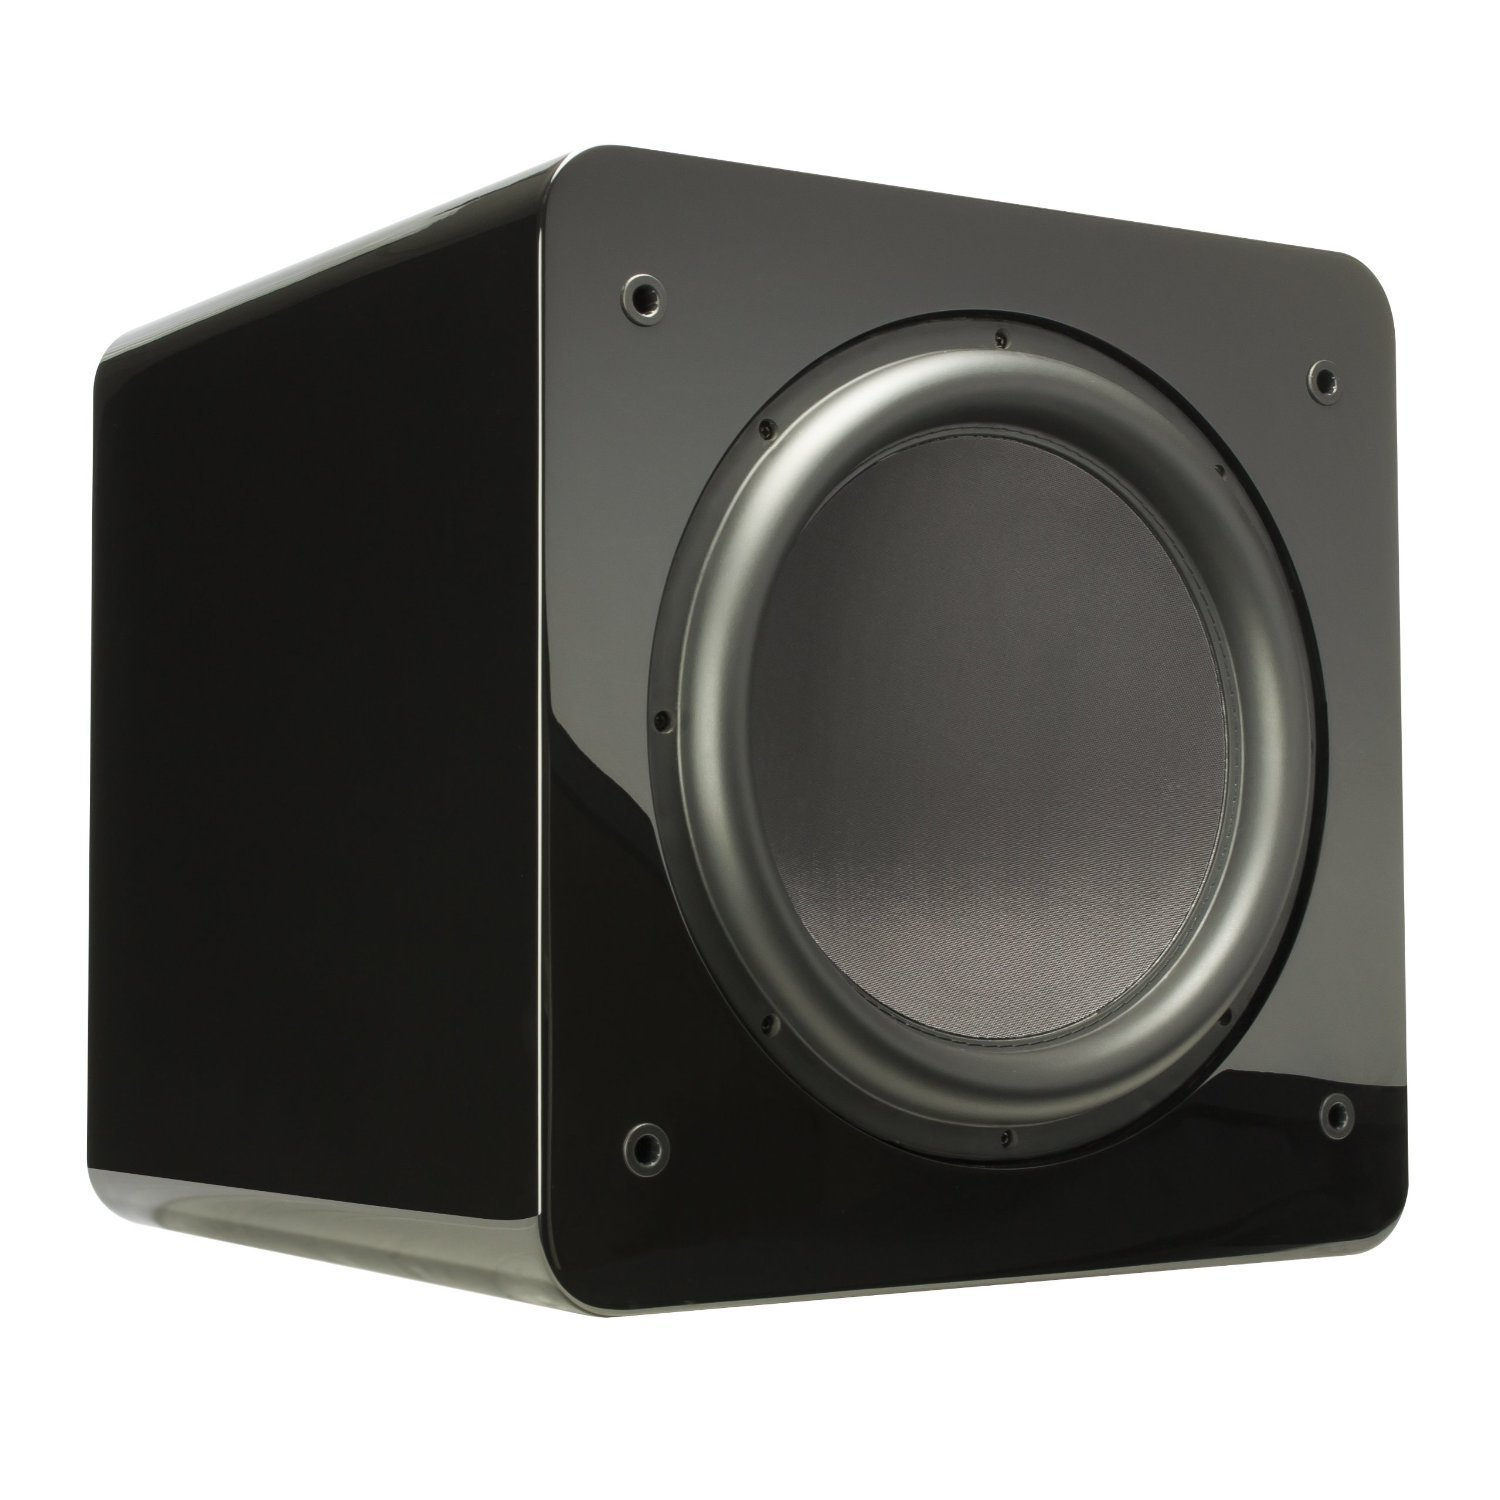 SVS SB13-Ultra – 13.5-inch, 1000 Watt DSP Controlled, Sealed Box Subwoofer with Variable Tuning (Piano Gloss)